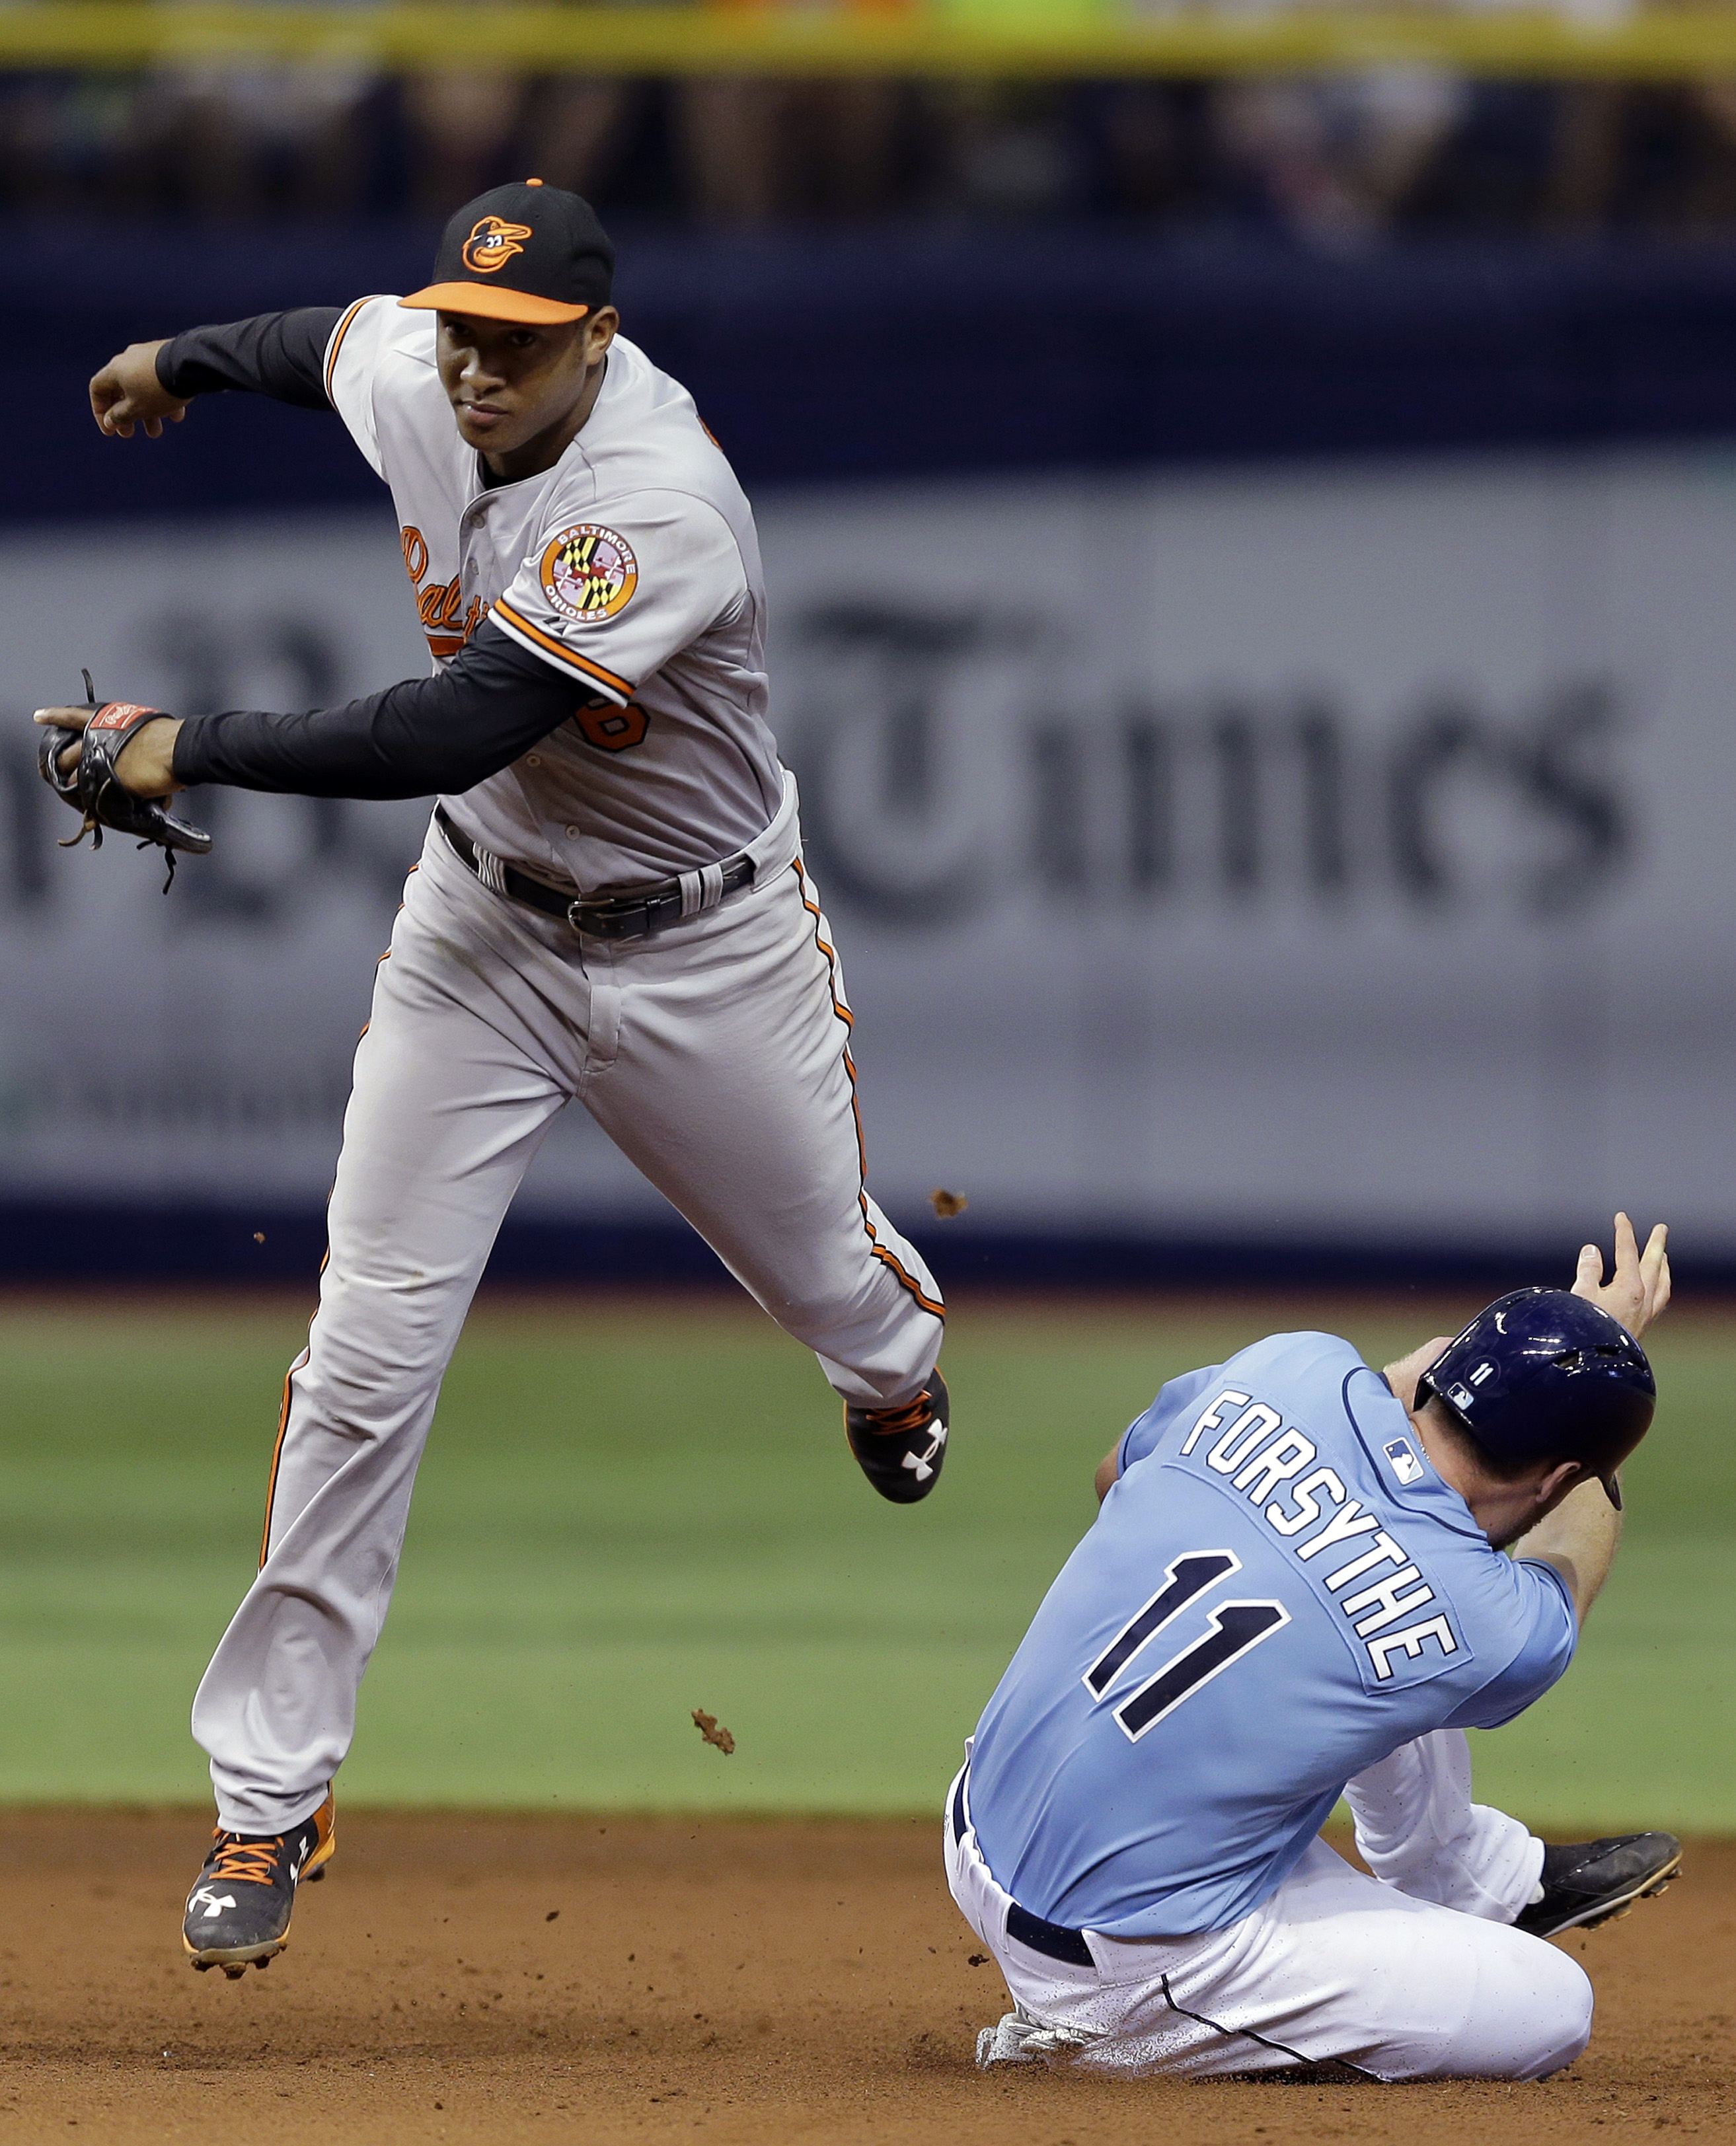 Baltimore Orioles second baseman Jonathan Schoop, left, forces out Tampa Bay Rays' Logan Forsythe, right, at second base on a fielder's choice by Joey Butler during the sixth inning of a baseball game Sunday, July 26, 2015, in St. Petersburg, Fla. (AP Pho